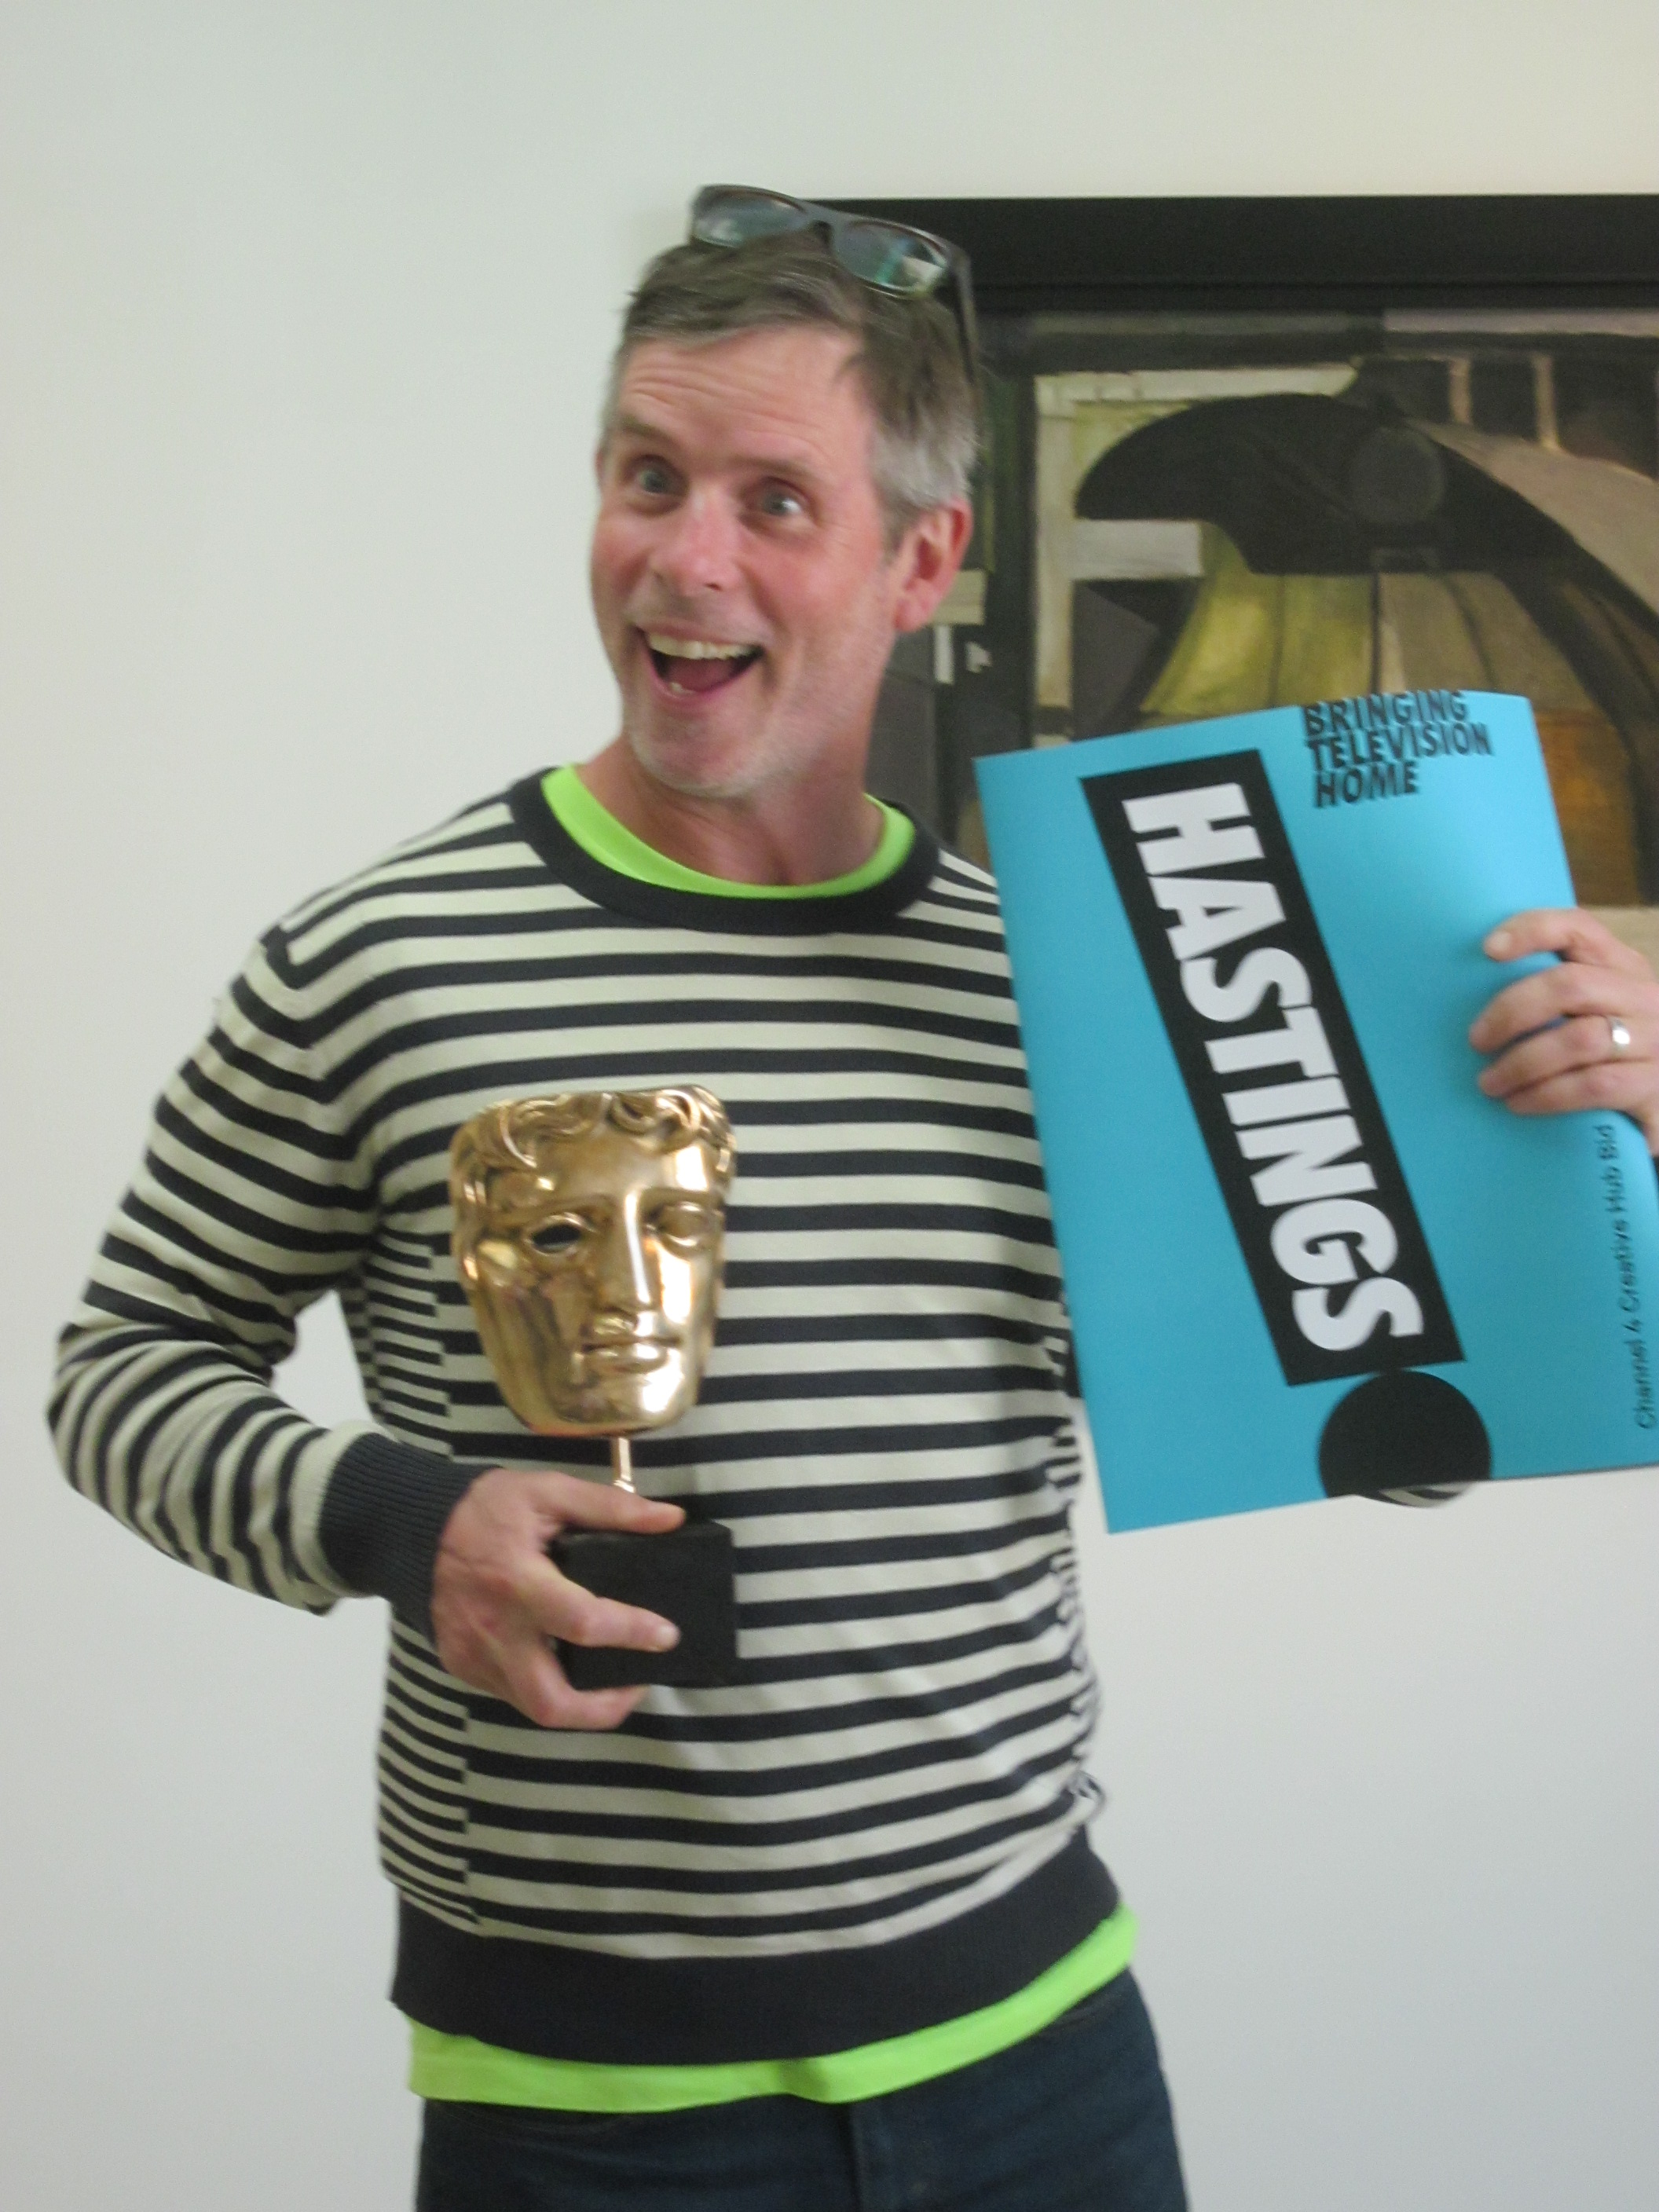 Bringing TV home! BAFTA winning director supports bid to bring C4 to town